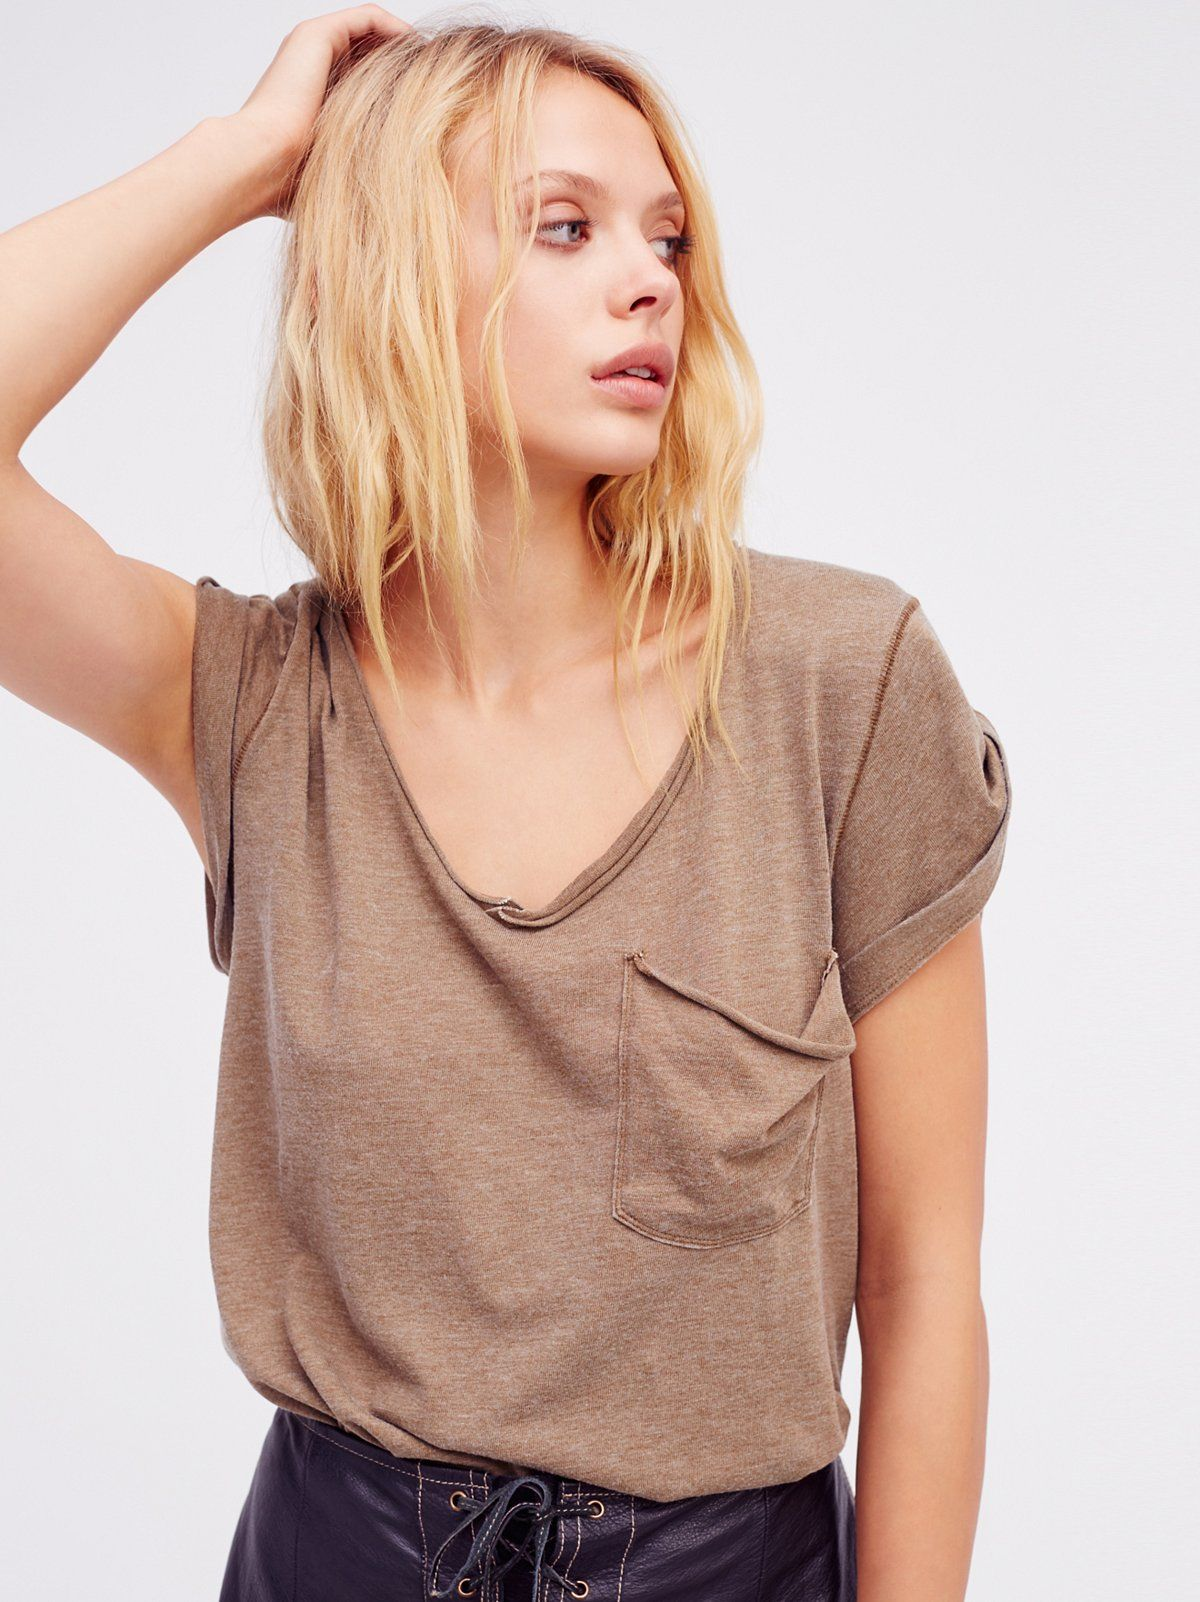 Lacey Denim Cutoff Shorts How to roll sleeves, Tees